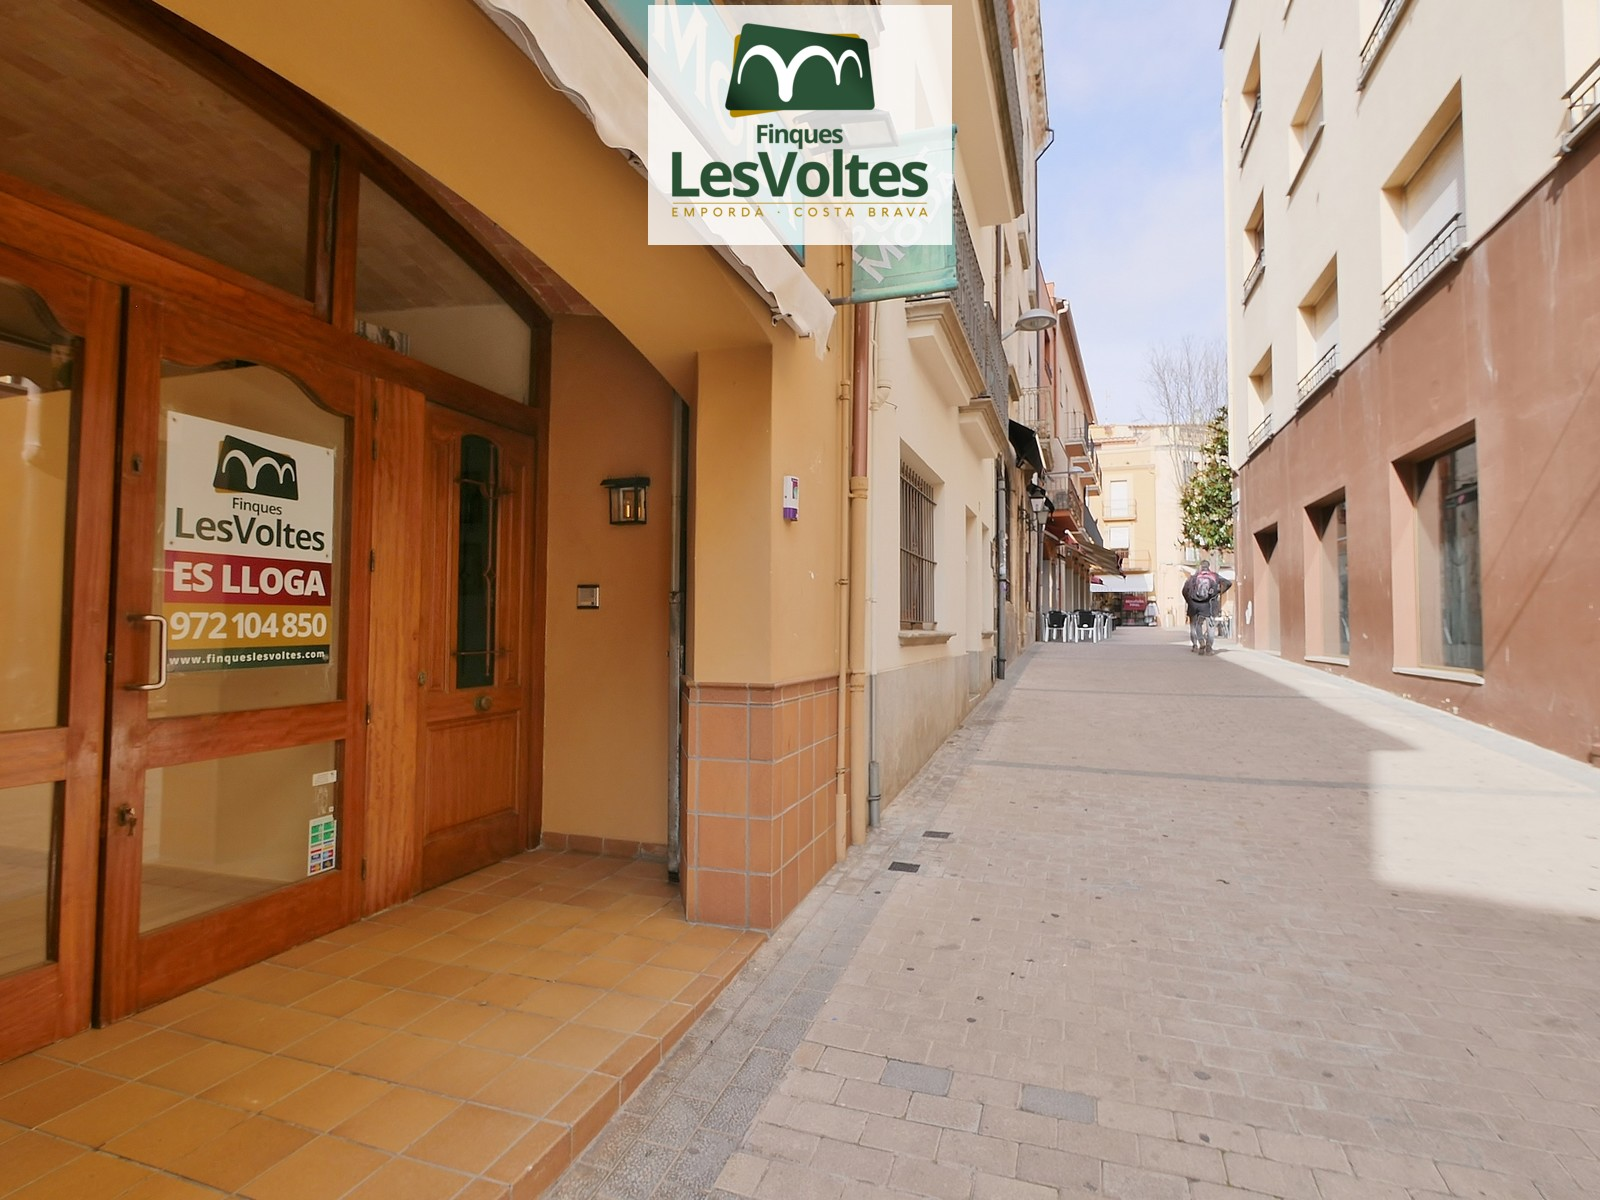 COMMERCIAL PREMISES WITH CHARM FOR RENT IN THE PEDESTRIAN CENTER OF PALAFRUGELL. GOOD LOCATION NEXT TO PLAÇA NOVA.